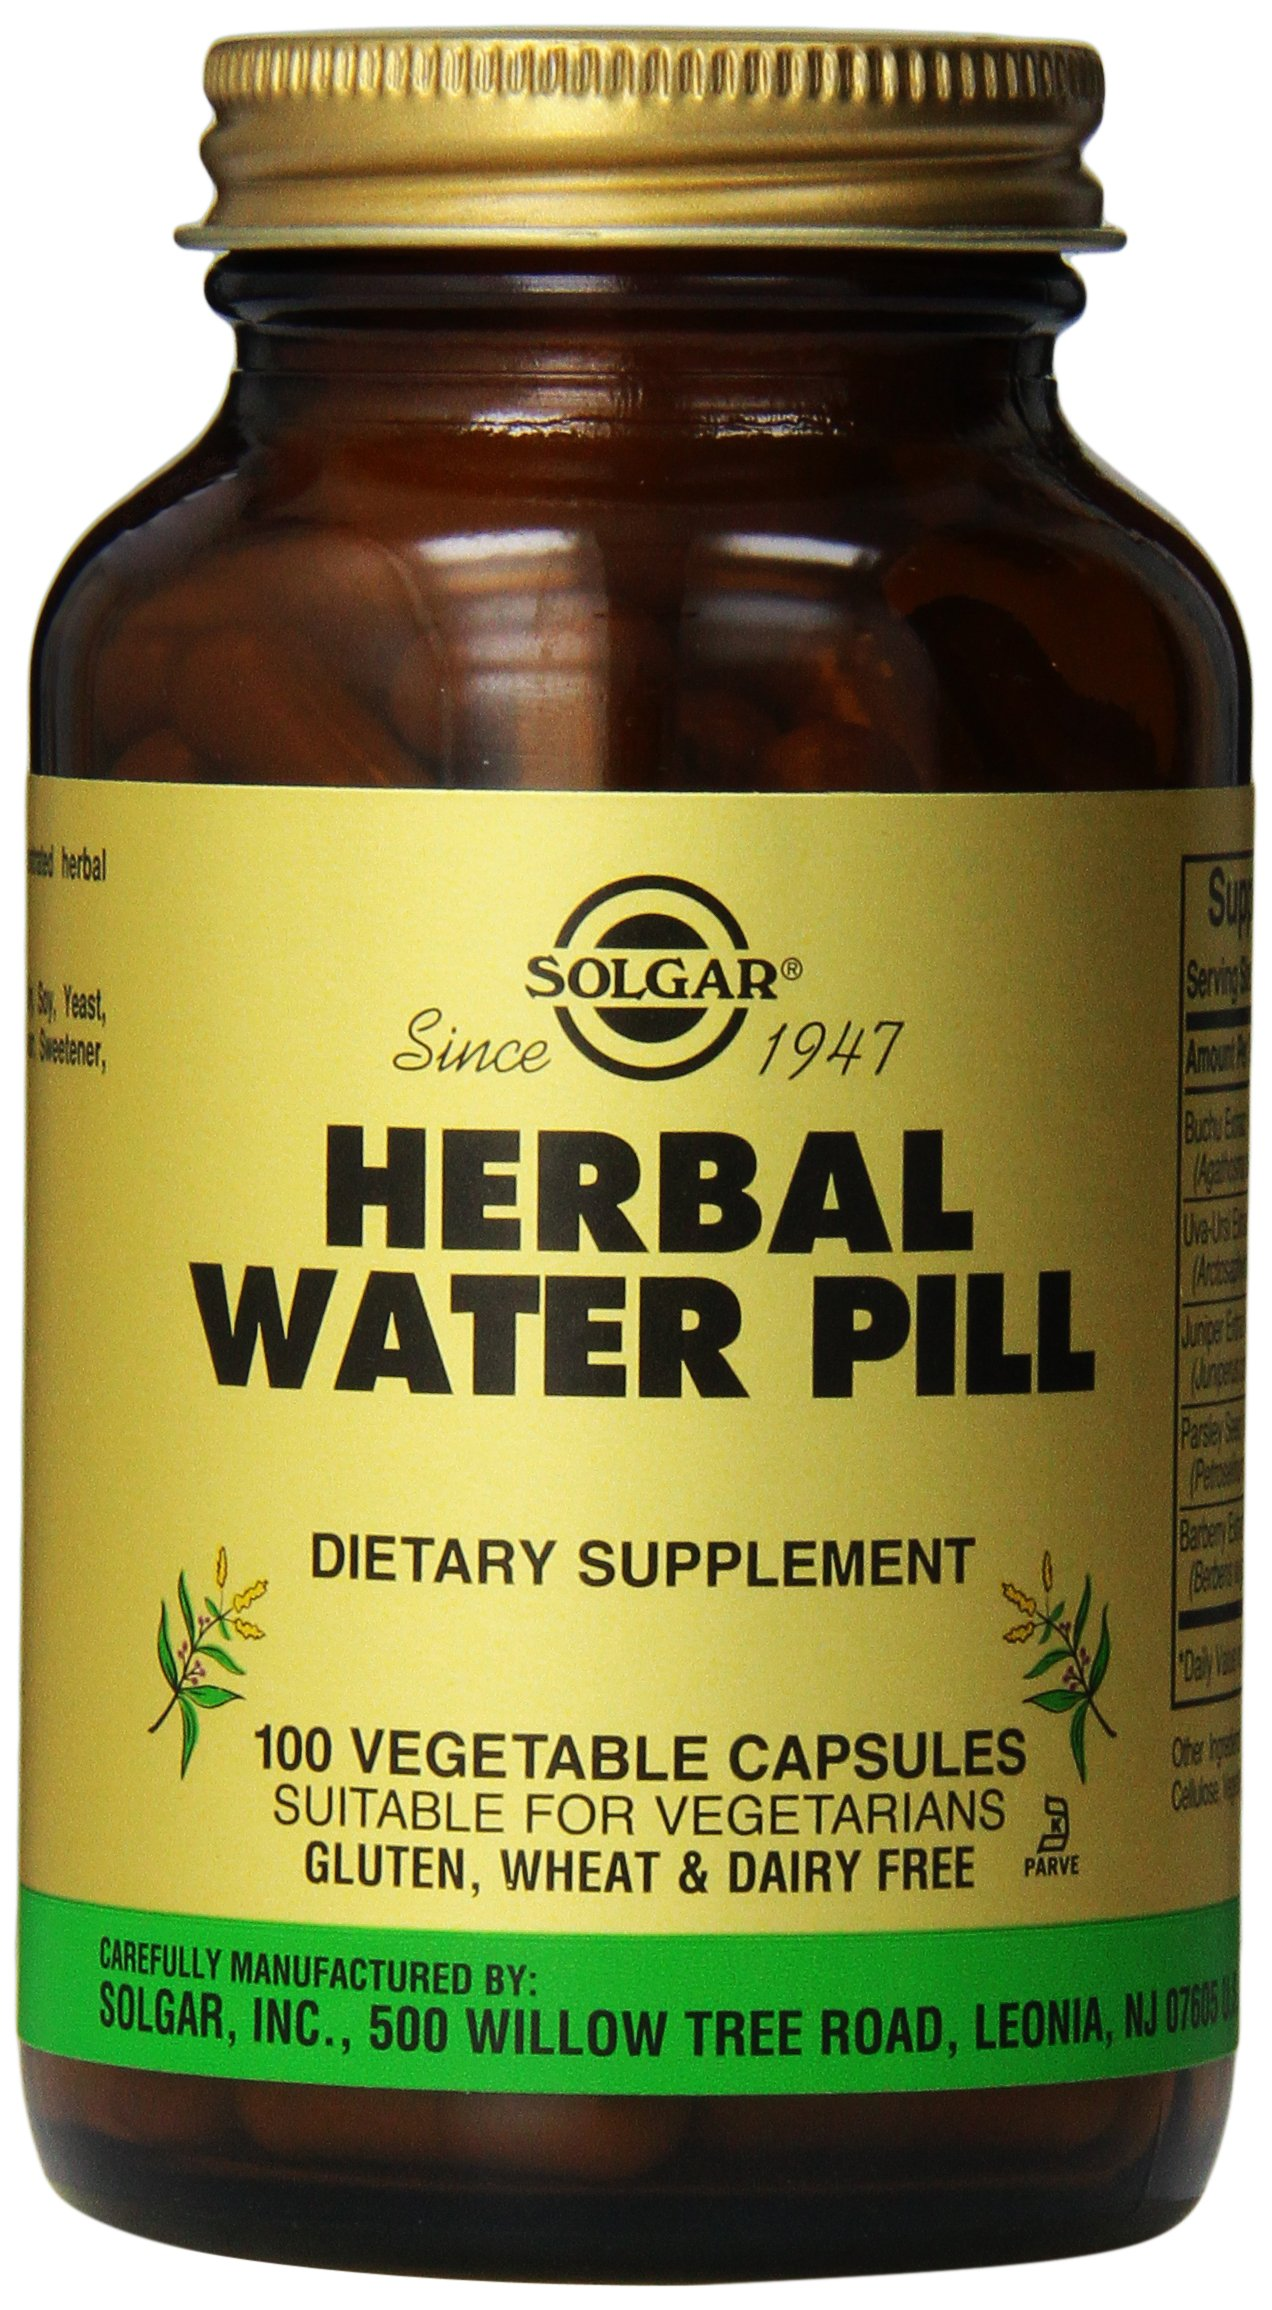 Solgar Herbal Water Pill Vegetable Capsules, 100 Count by Solgar